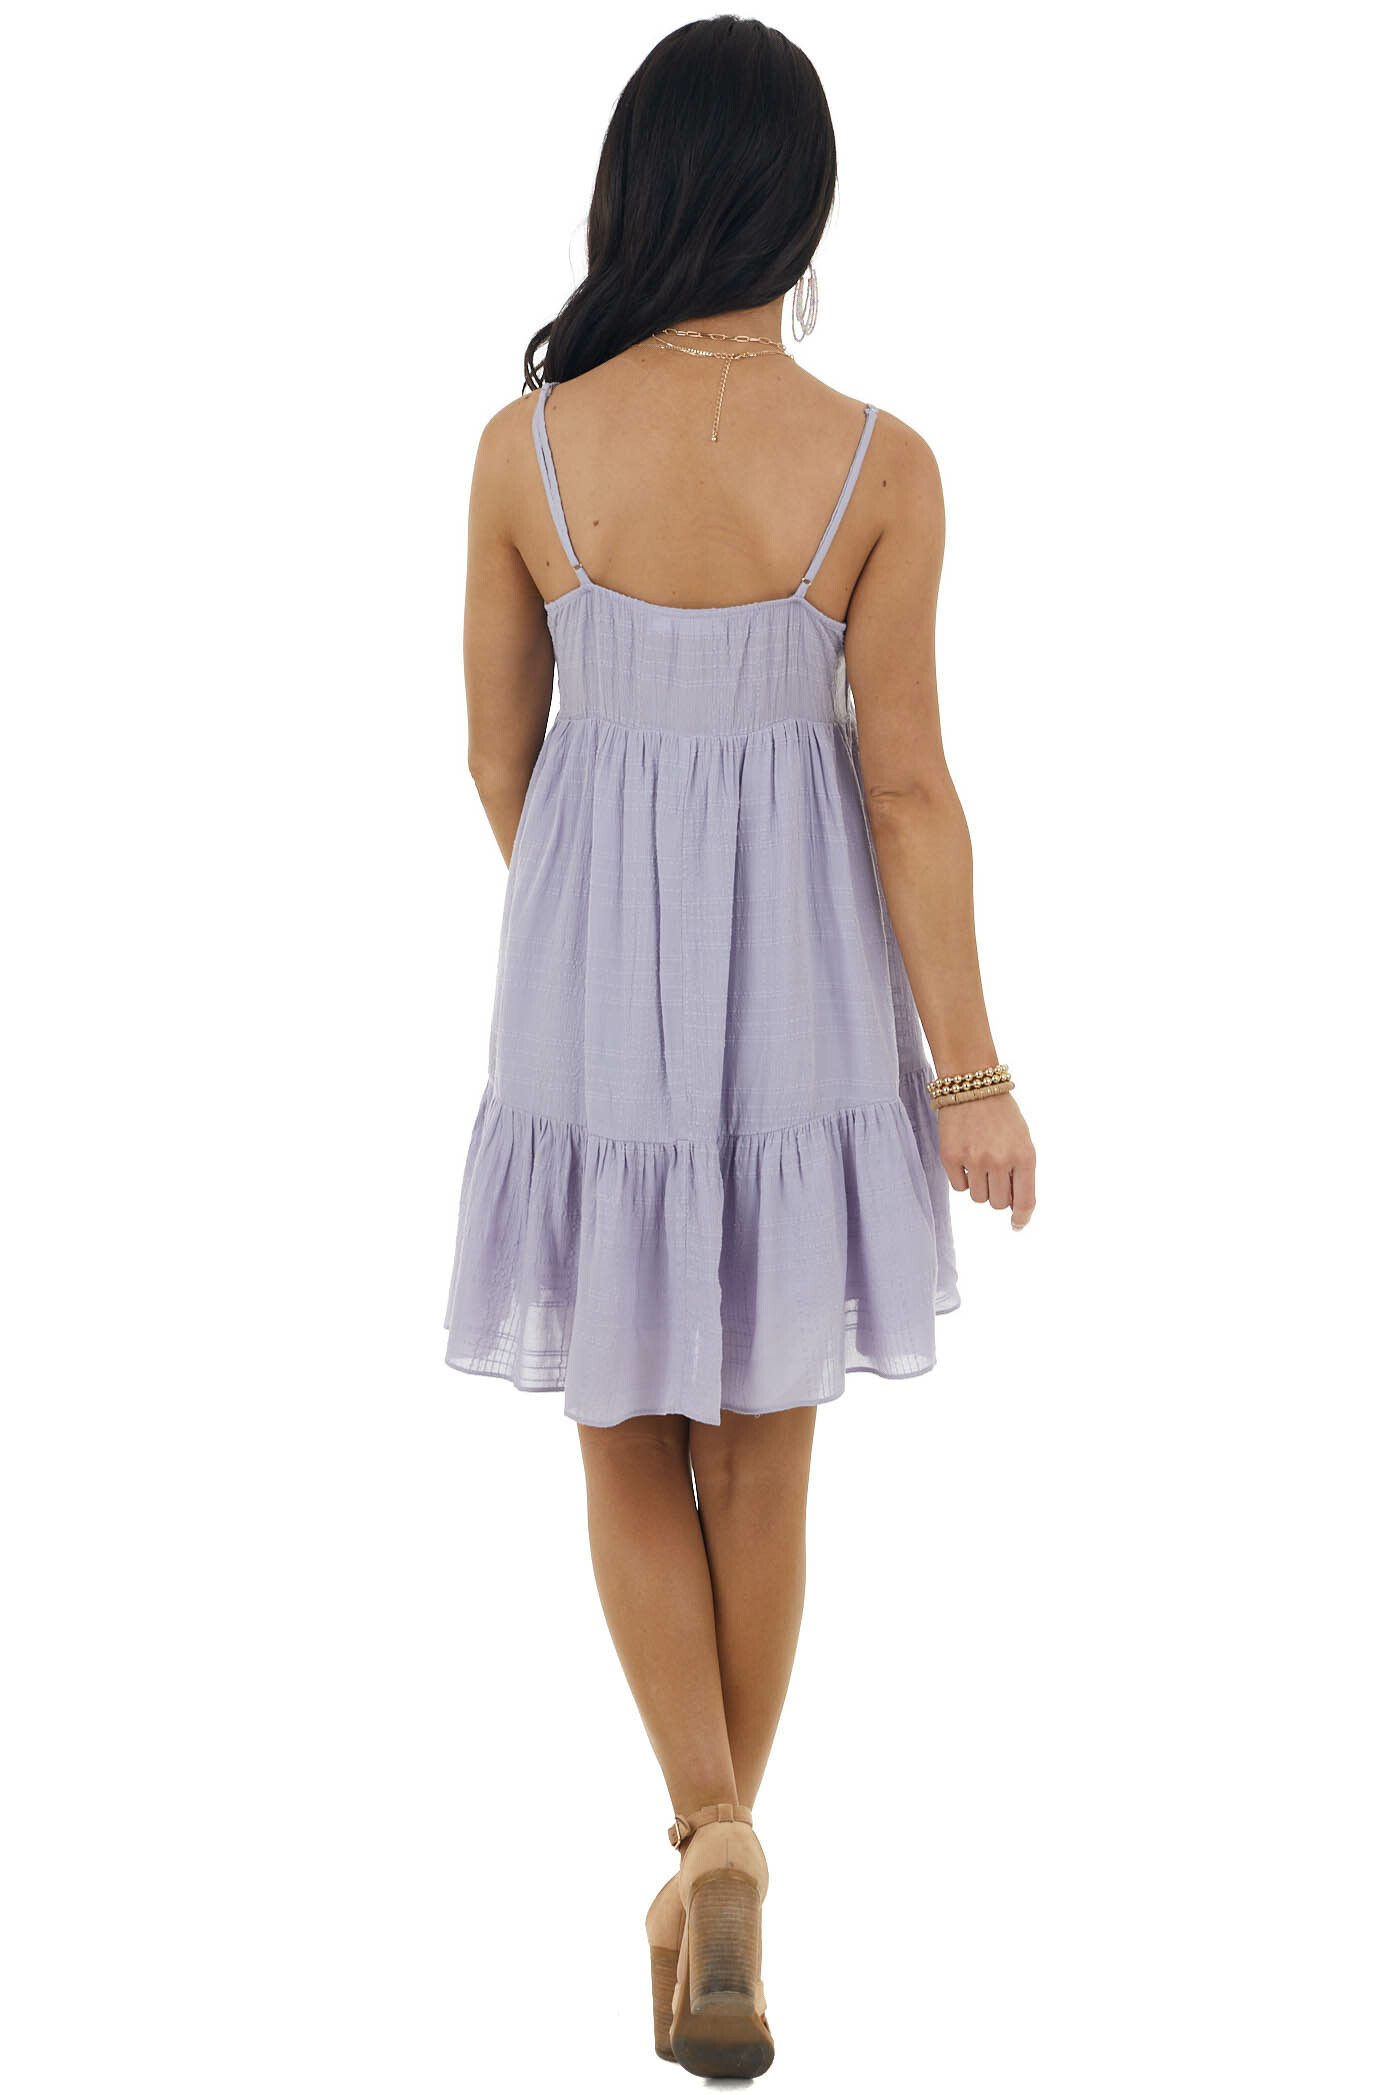 Faded Lavender Sleeveless Babydoll Tiered Woven Mini Dress